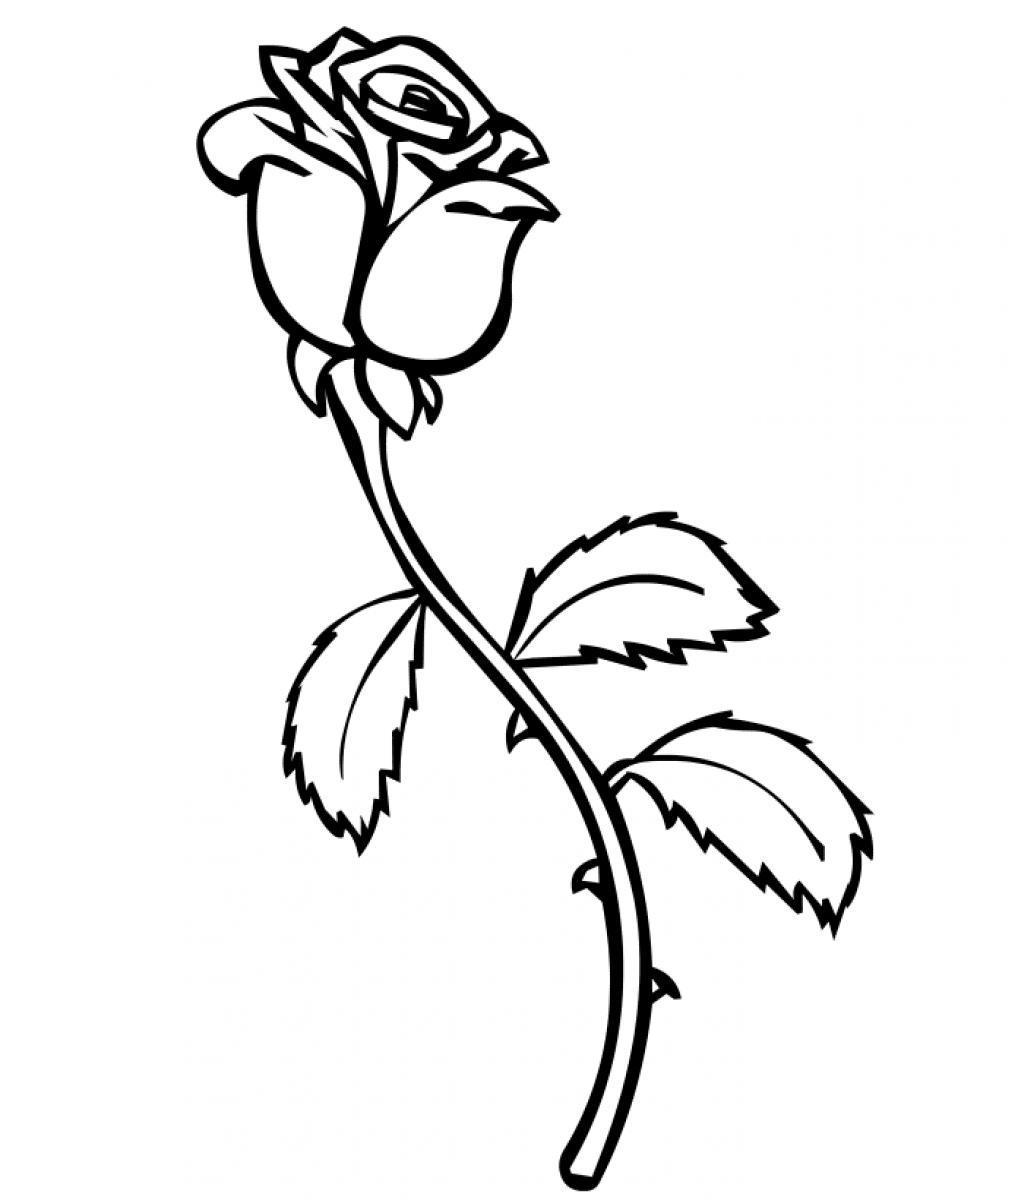 Coloring sheets roses - Rose Coloring Pages For Kids